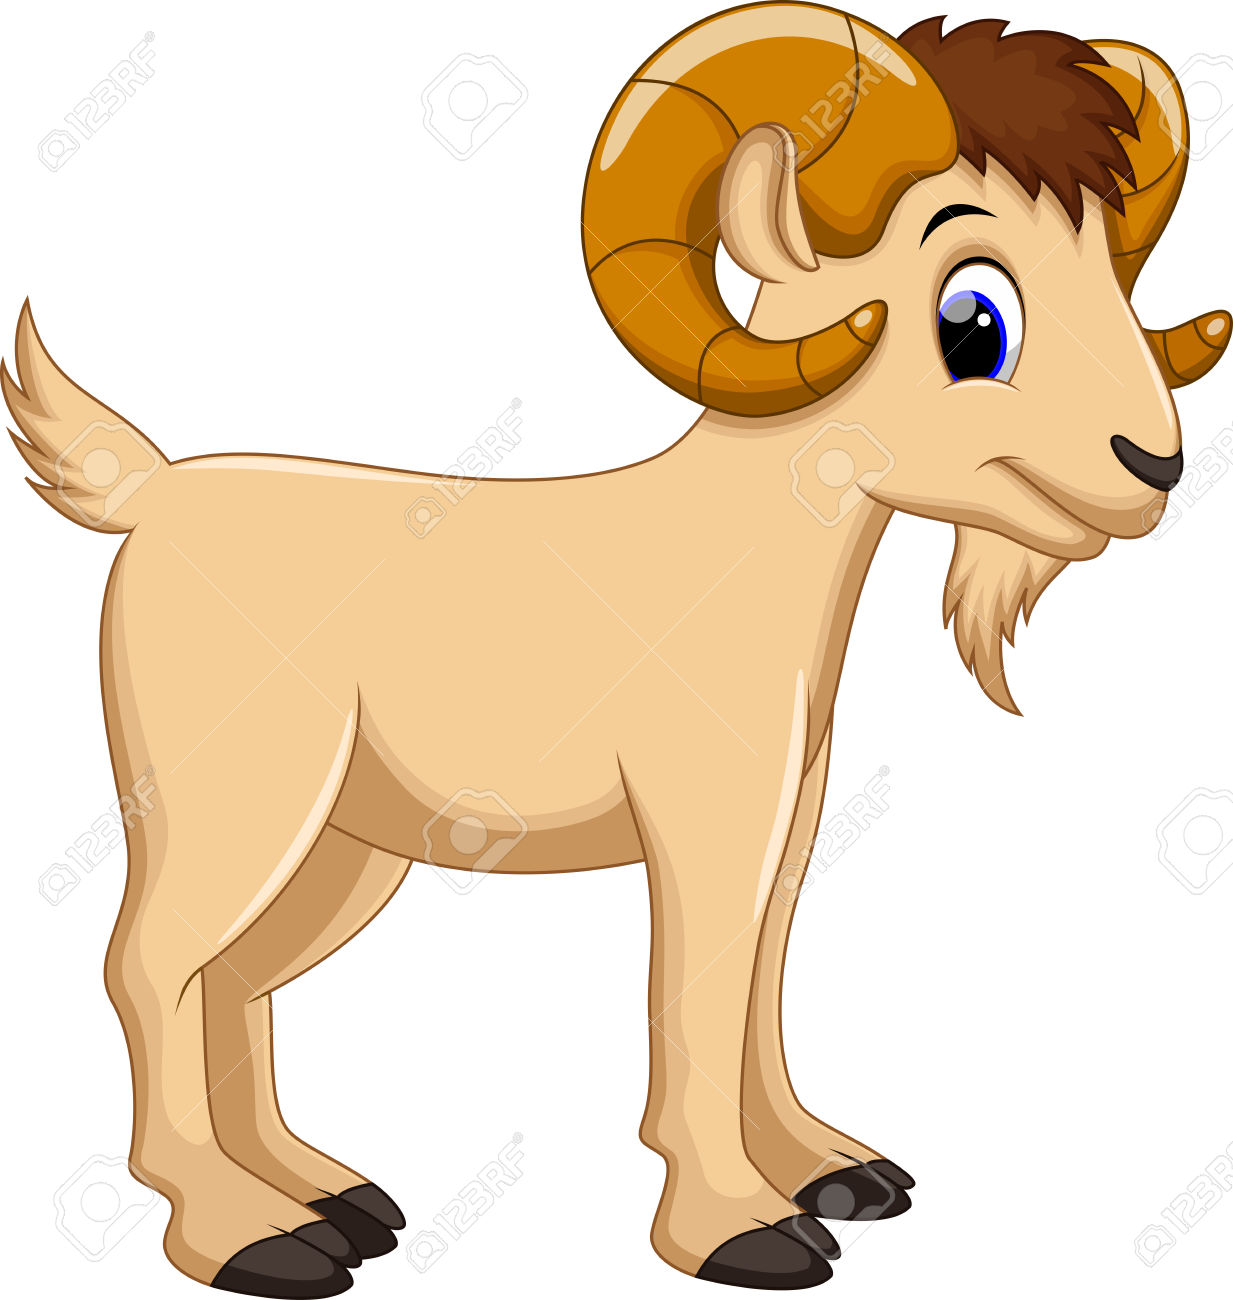 Goat Clipart | Clipart Panda - Free Clipart Images